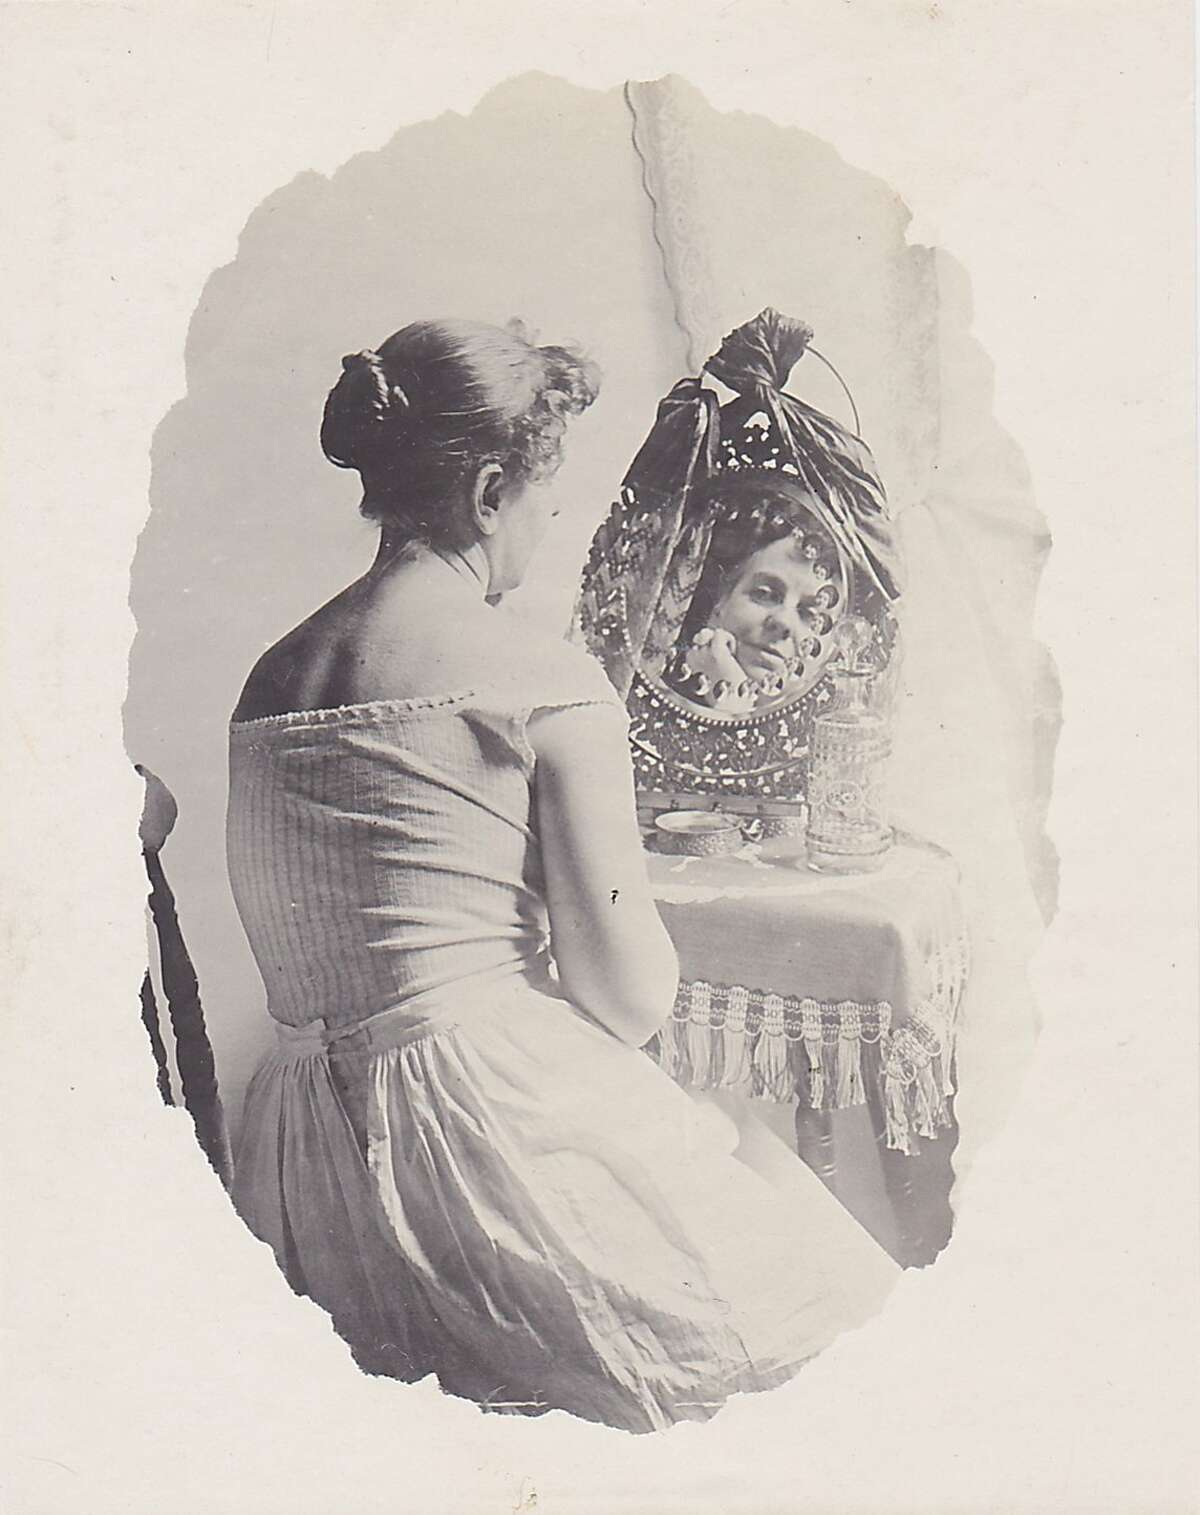 """Images from the book """"Working Girls: An American Brothel, circa 1892, The Secret Photographs of William Goldman"""" (Glitterati Press; 240 pages; $60)."""